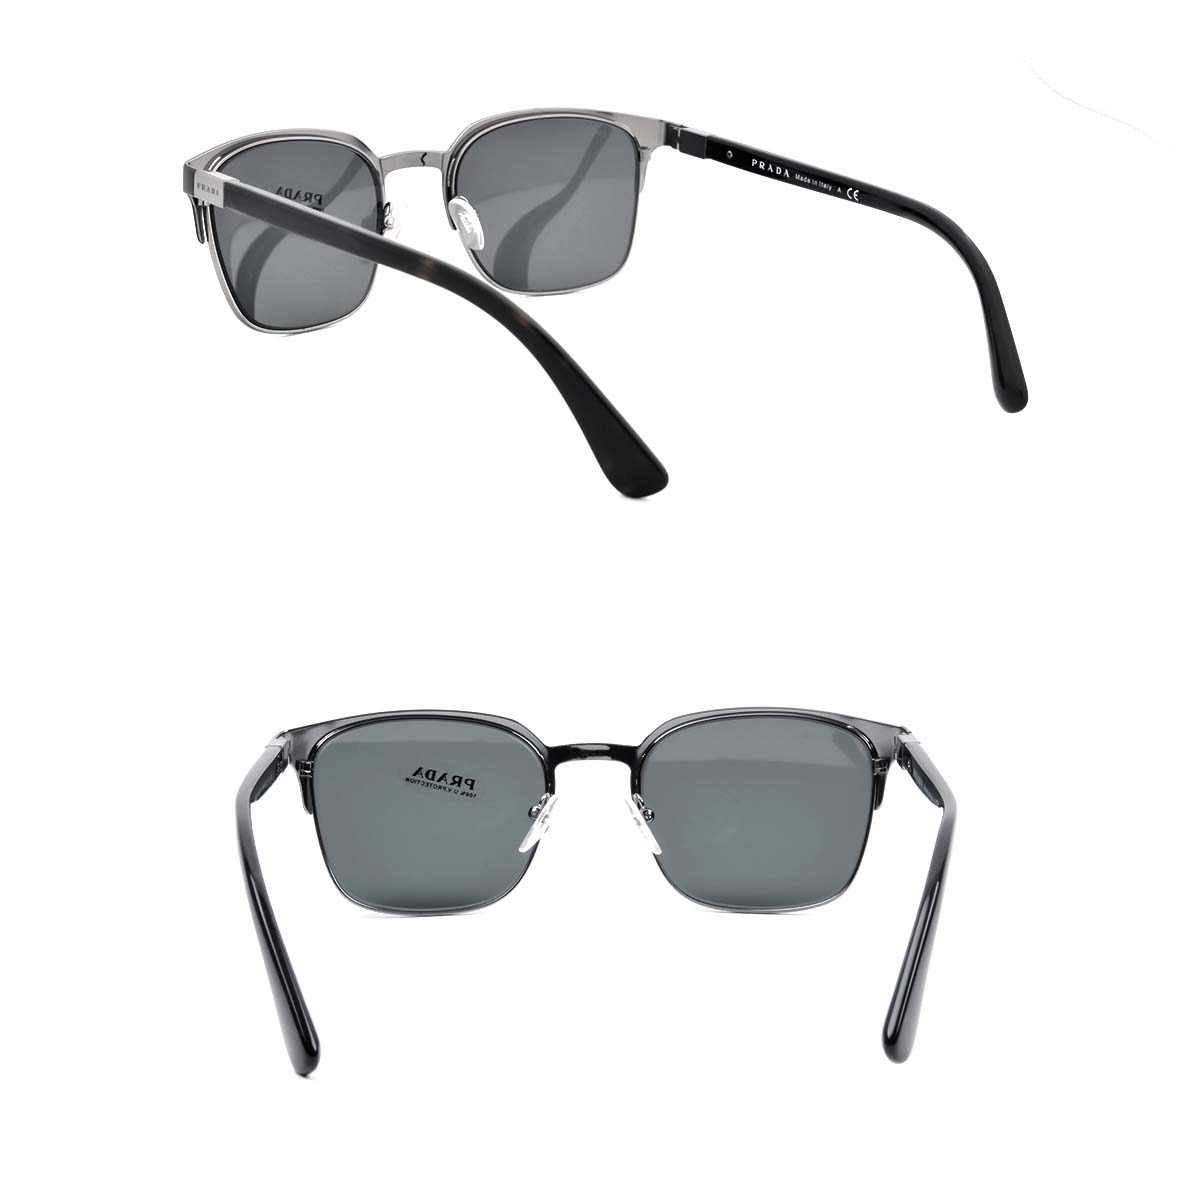 f93c7e4ef ... An up to 20 times point in the shop! Prada sunglasses PR61SS 1AB301 52  size